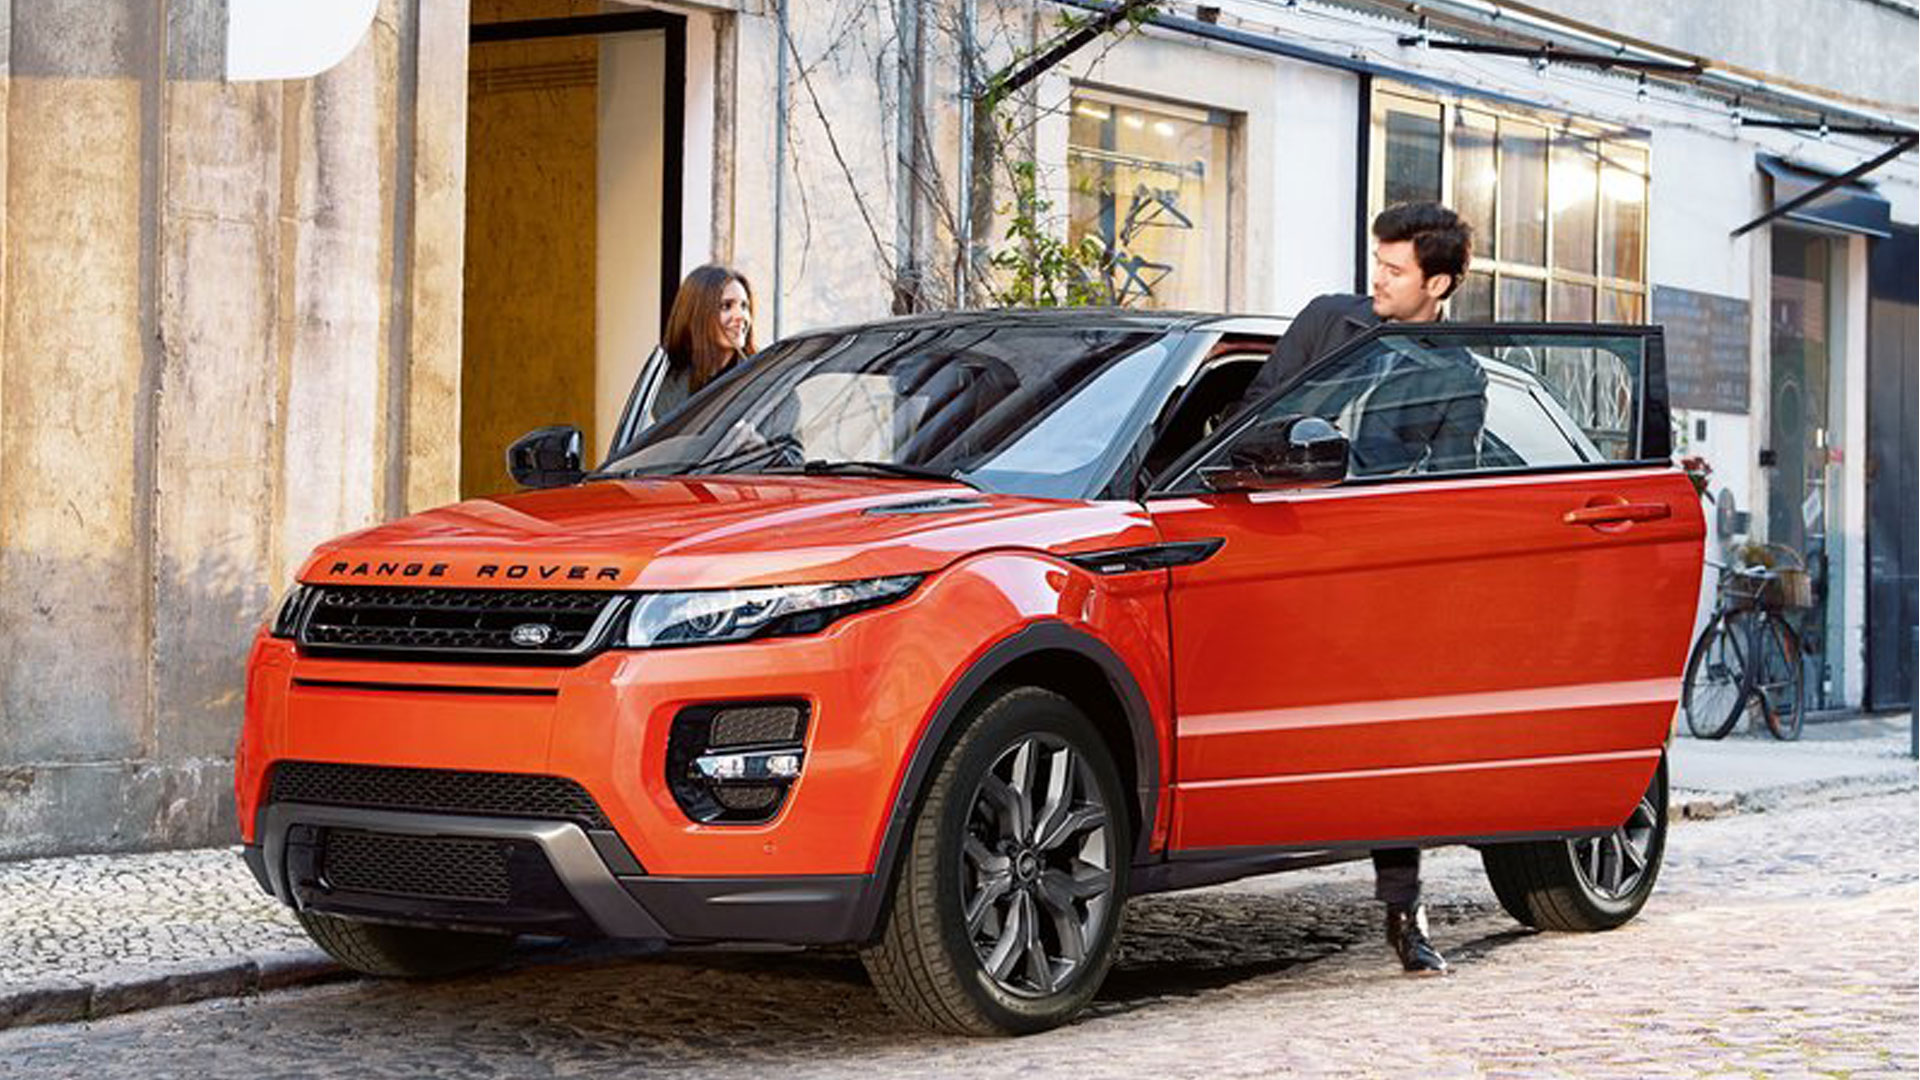 2015 land rover range rover evoque 19 widescreen car wallpaper. Black Bedroom Furniture Sets. Home Design Ideas